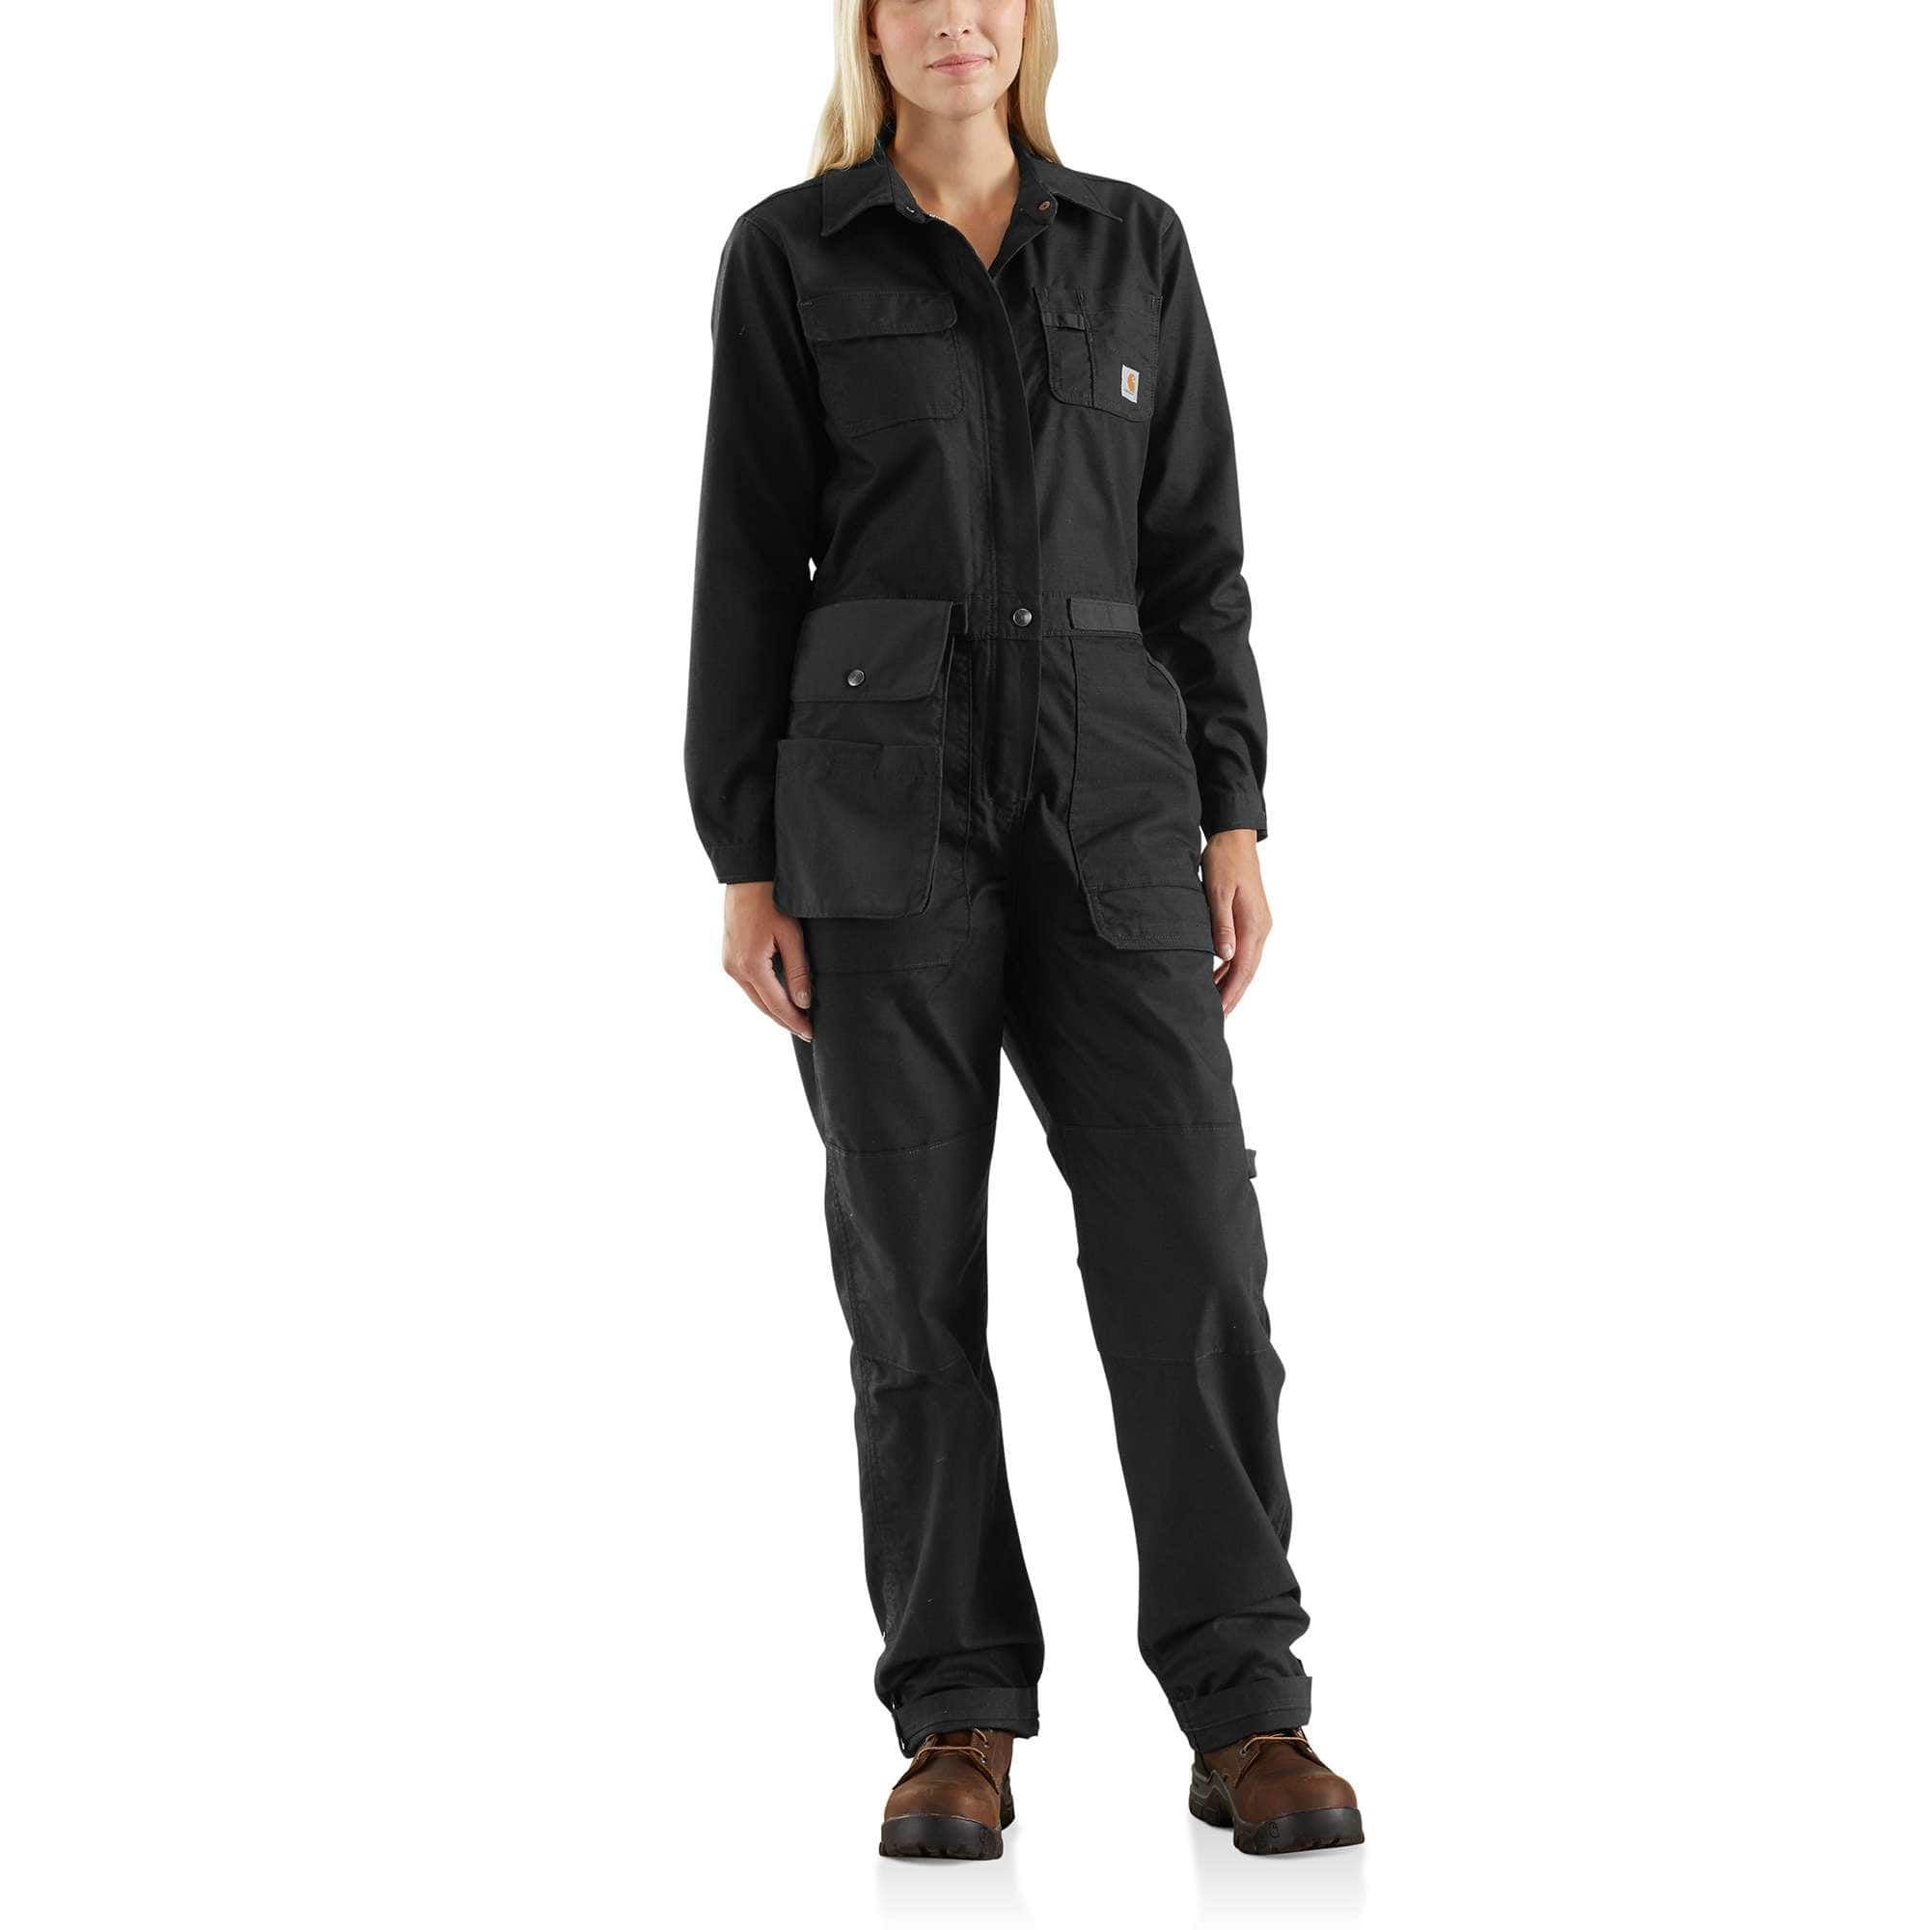 women s smithville coverall 103046 carhartt coveralls on work coveralls id=37130